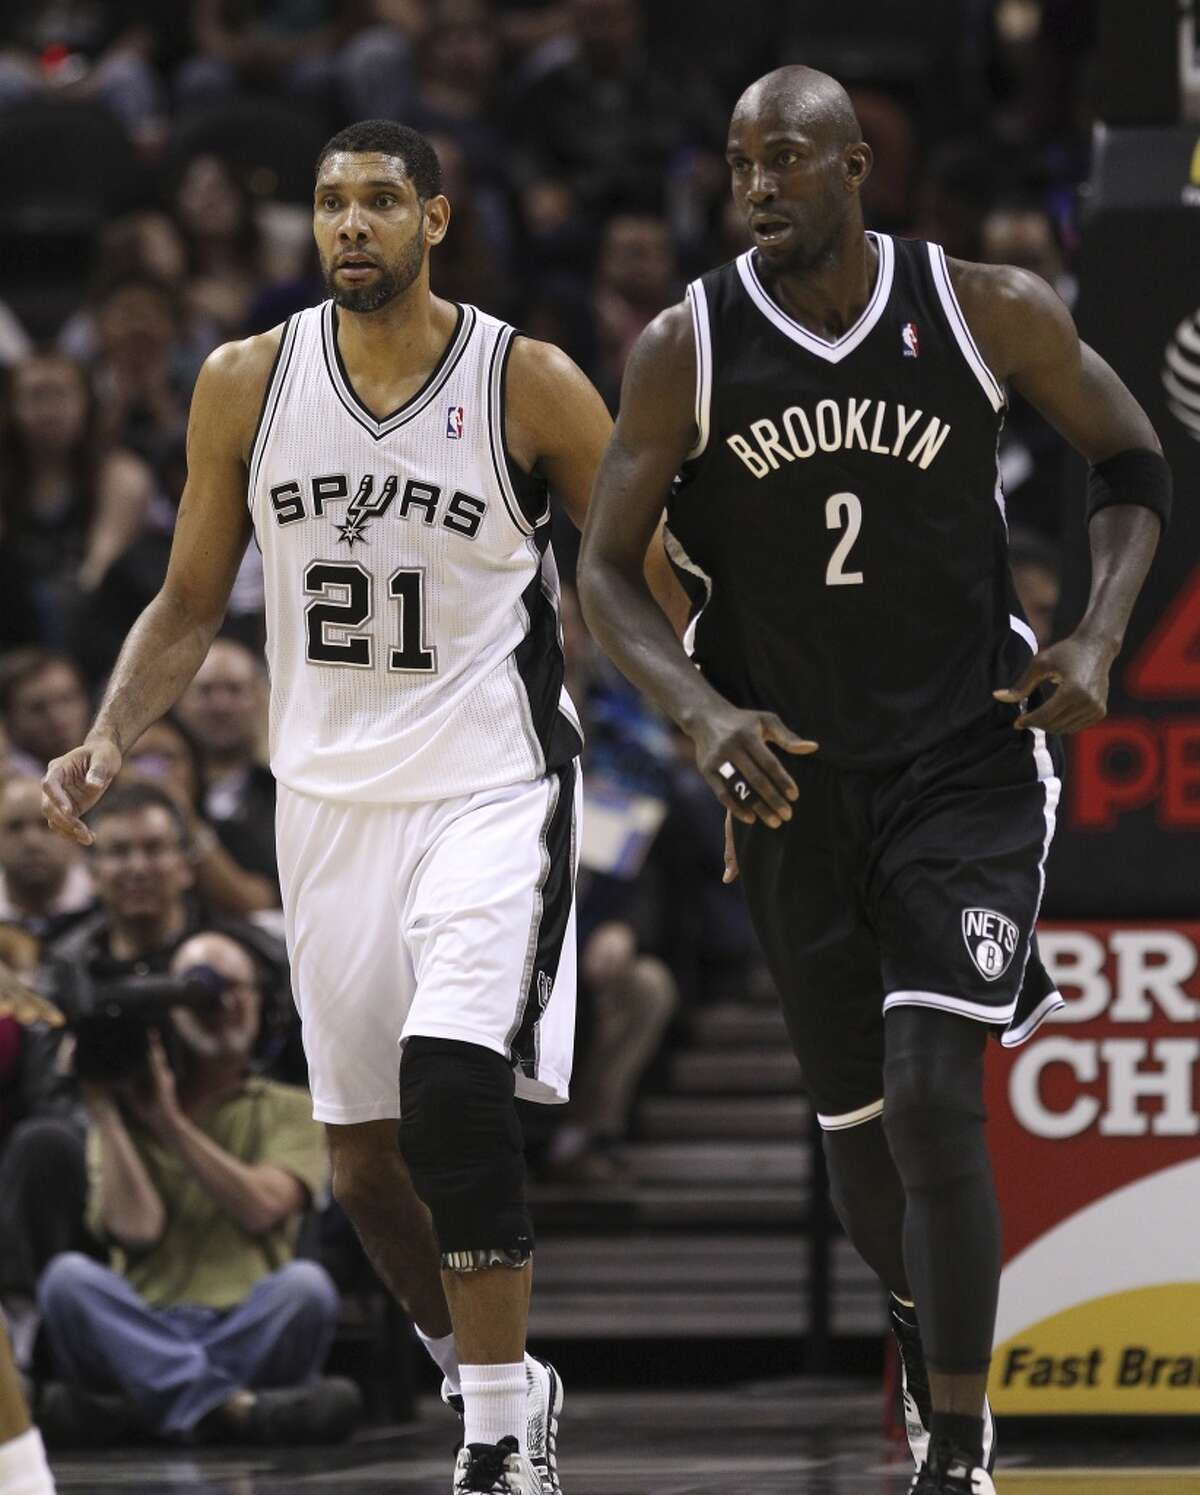 Kevin Garnett Draft: 1995, No. 5 Accolades: 2004 MVP, 2008 Defensive Player of the Year, 2008 NBA champion, 15-time All-Star, 9-time All-NBA team, 12-time All-Defensive team